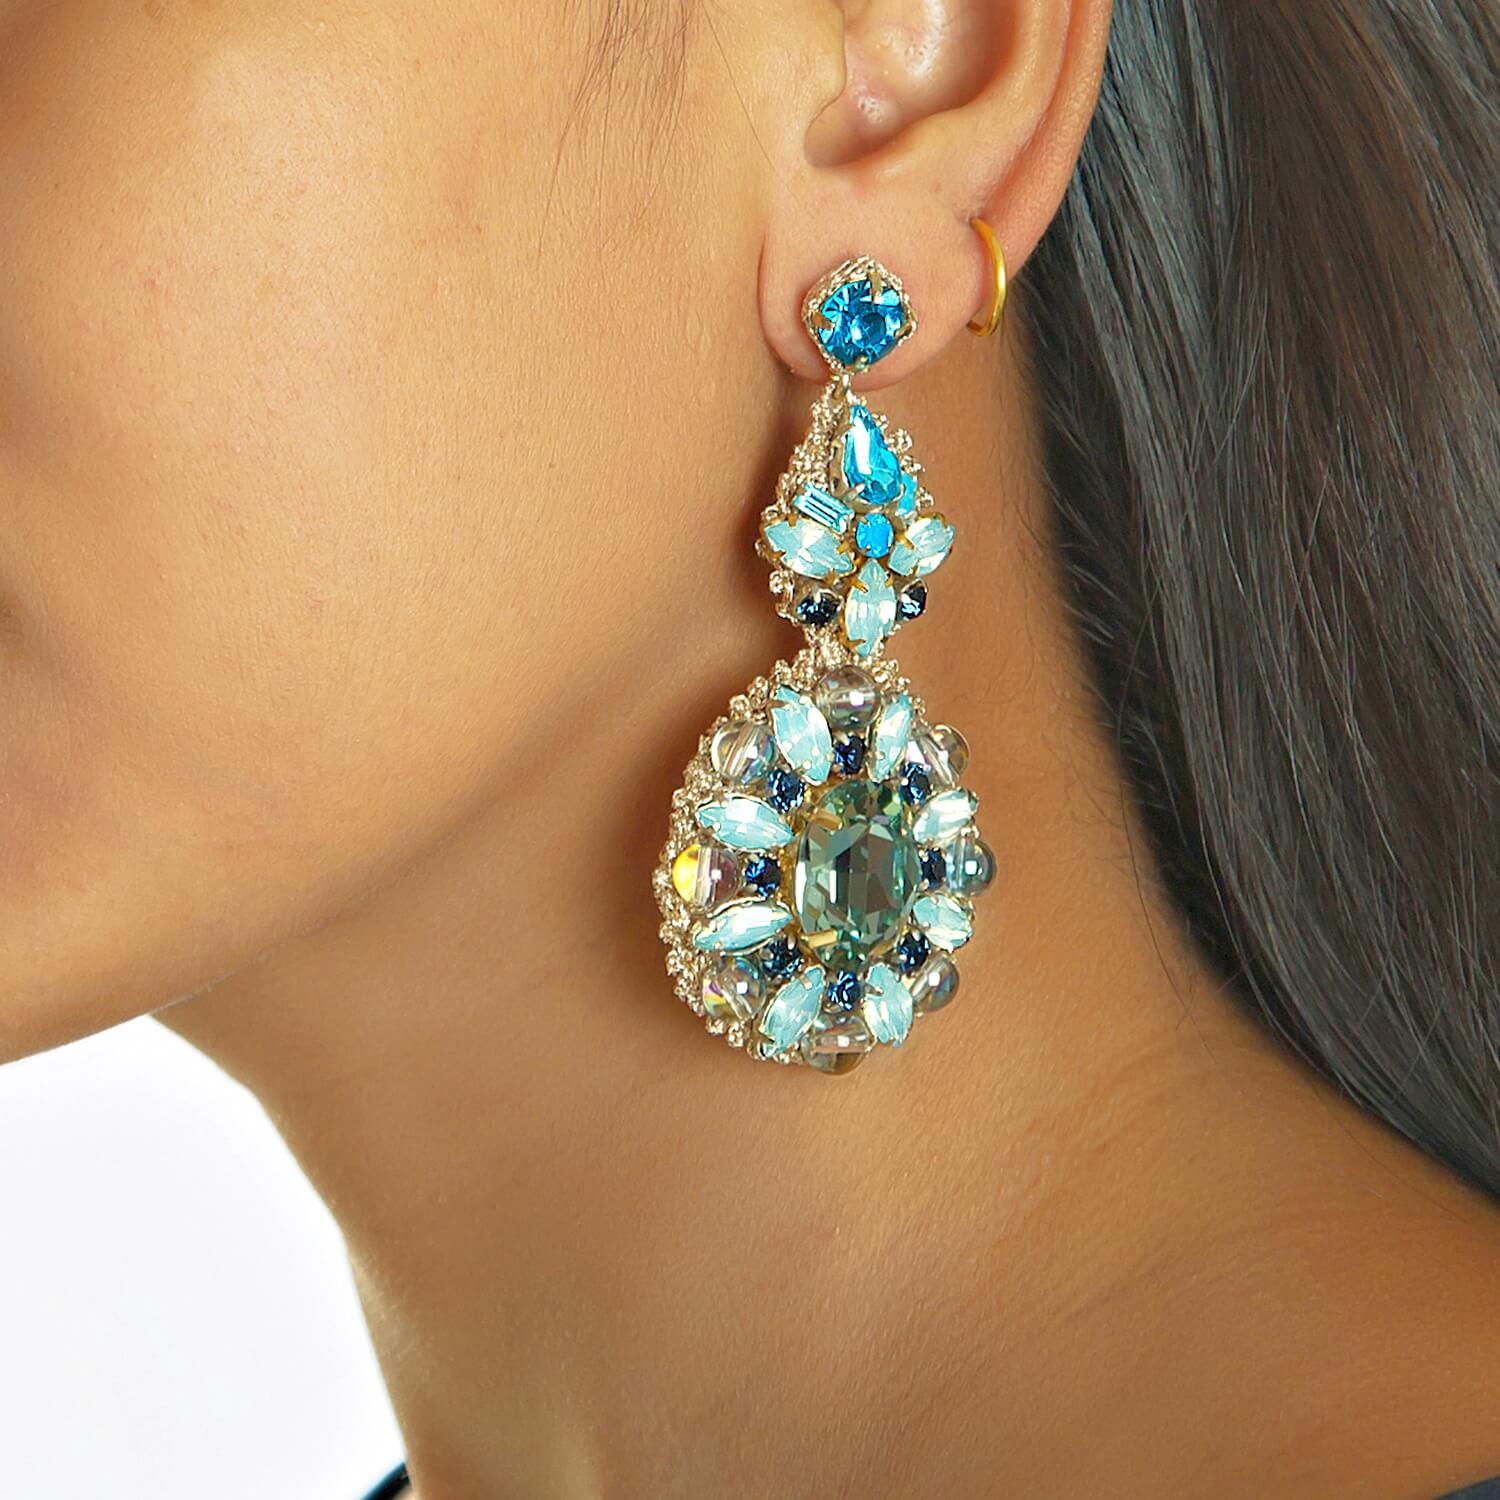 Lynette Aqua Chandelier Earring - Model